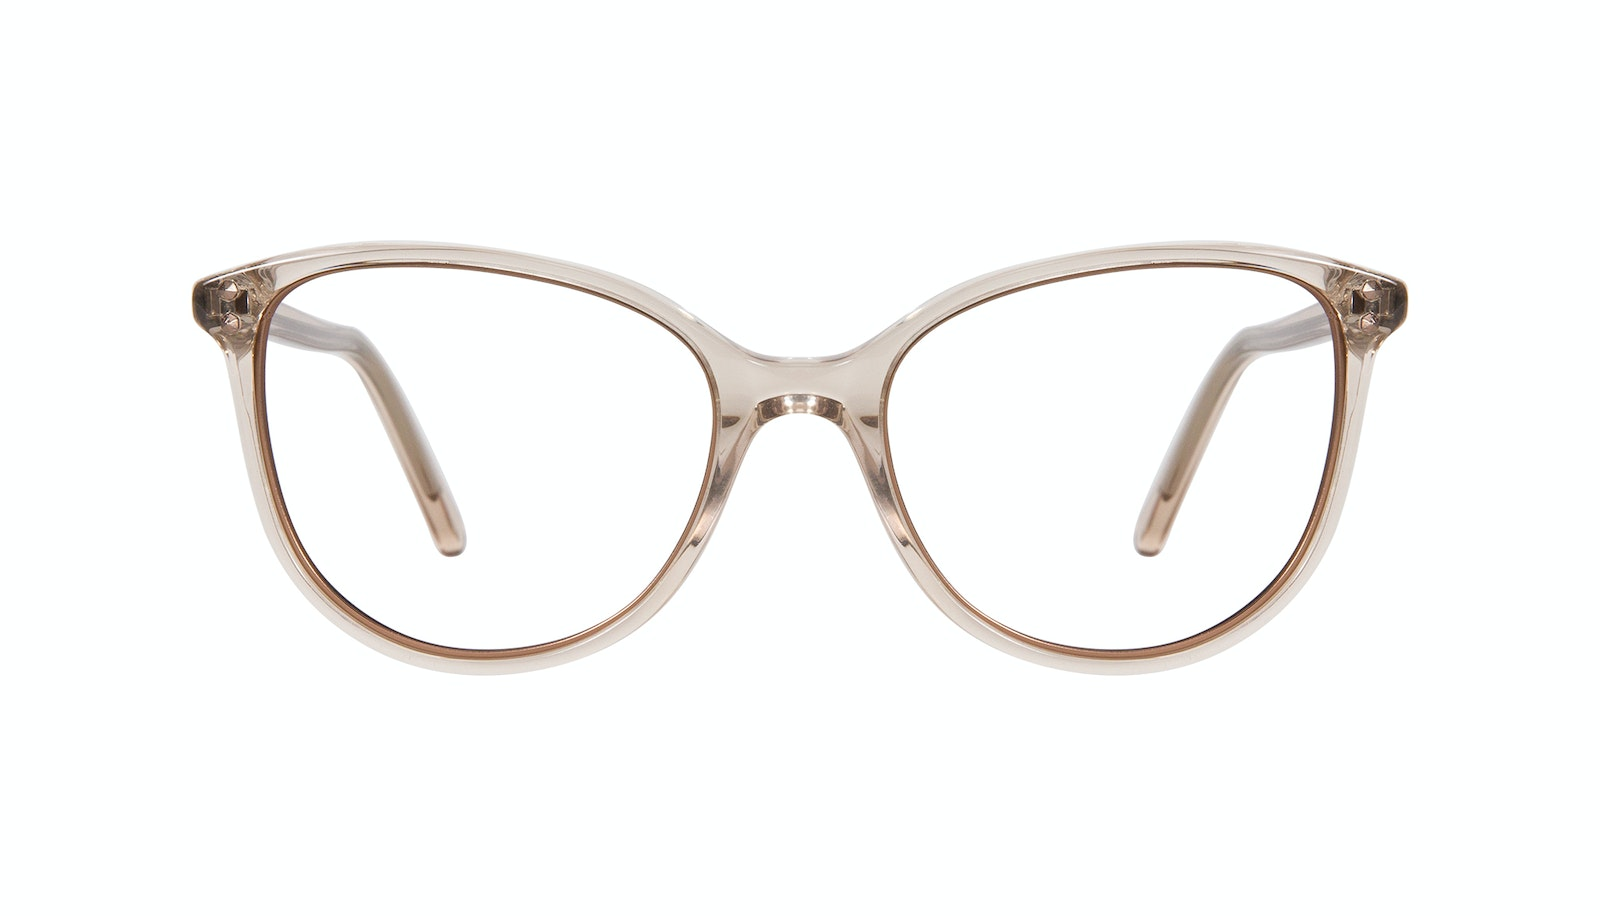 Affordable Fashion Glasses Cat Eye Eyeglasses Women Imagine Petite Shine Blond